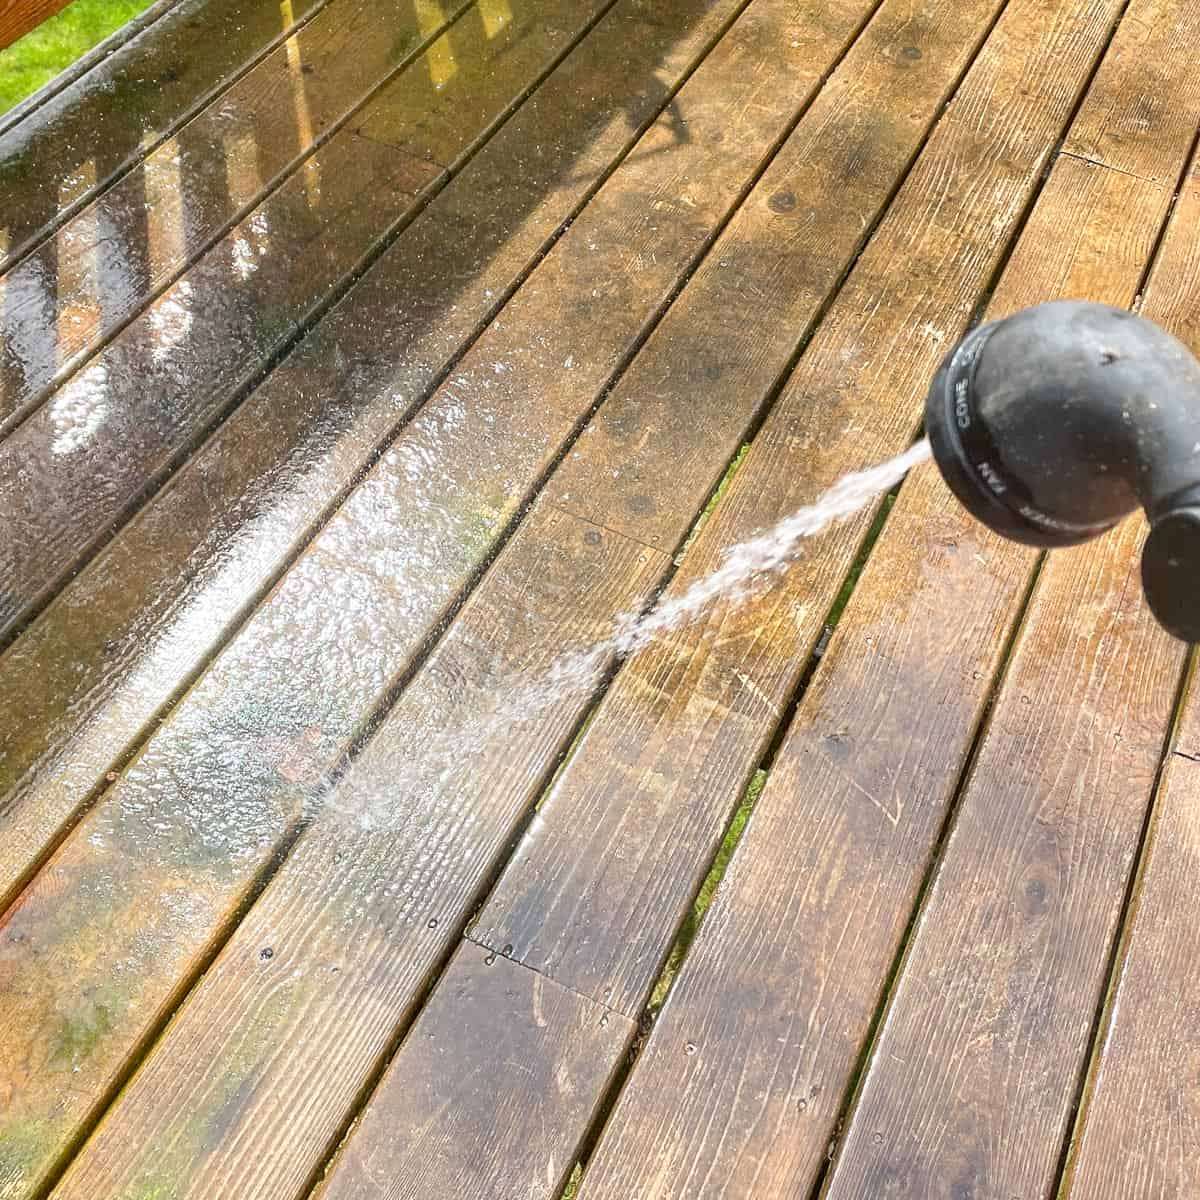 rinsing dirty deck with a hose before cleaning